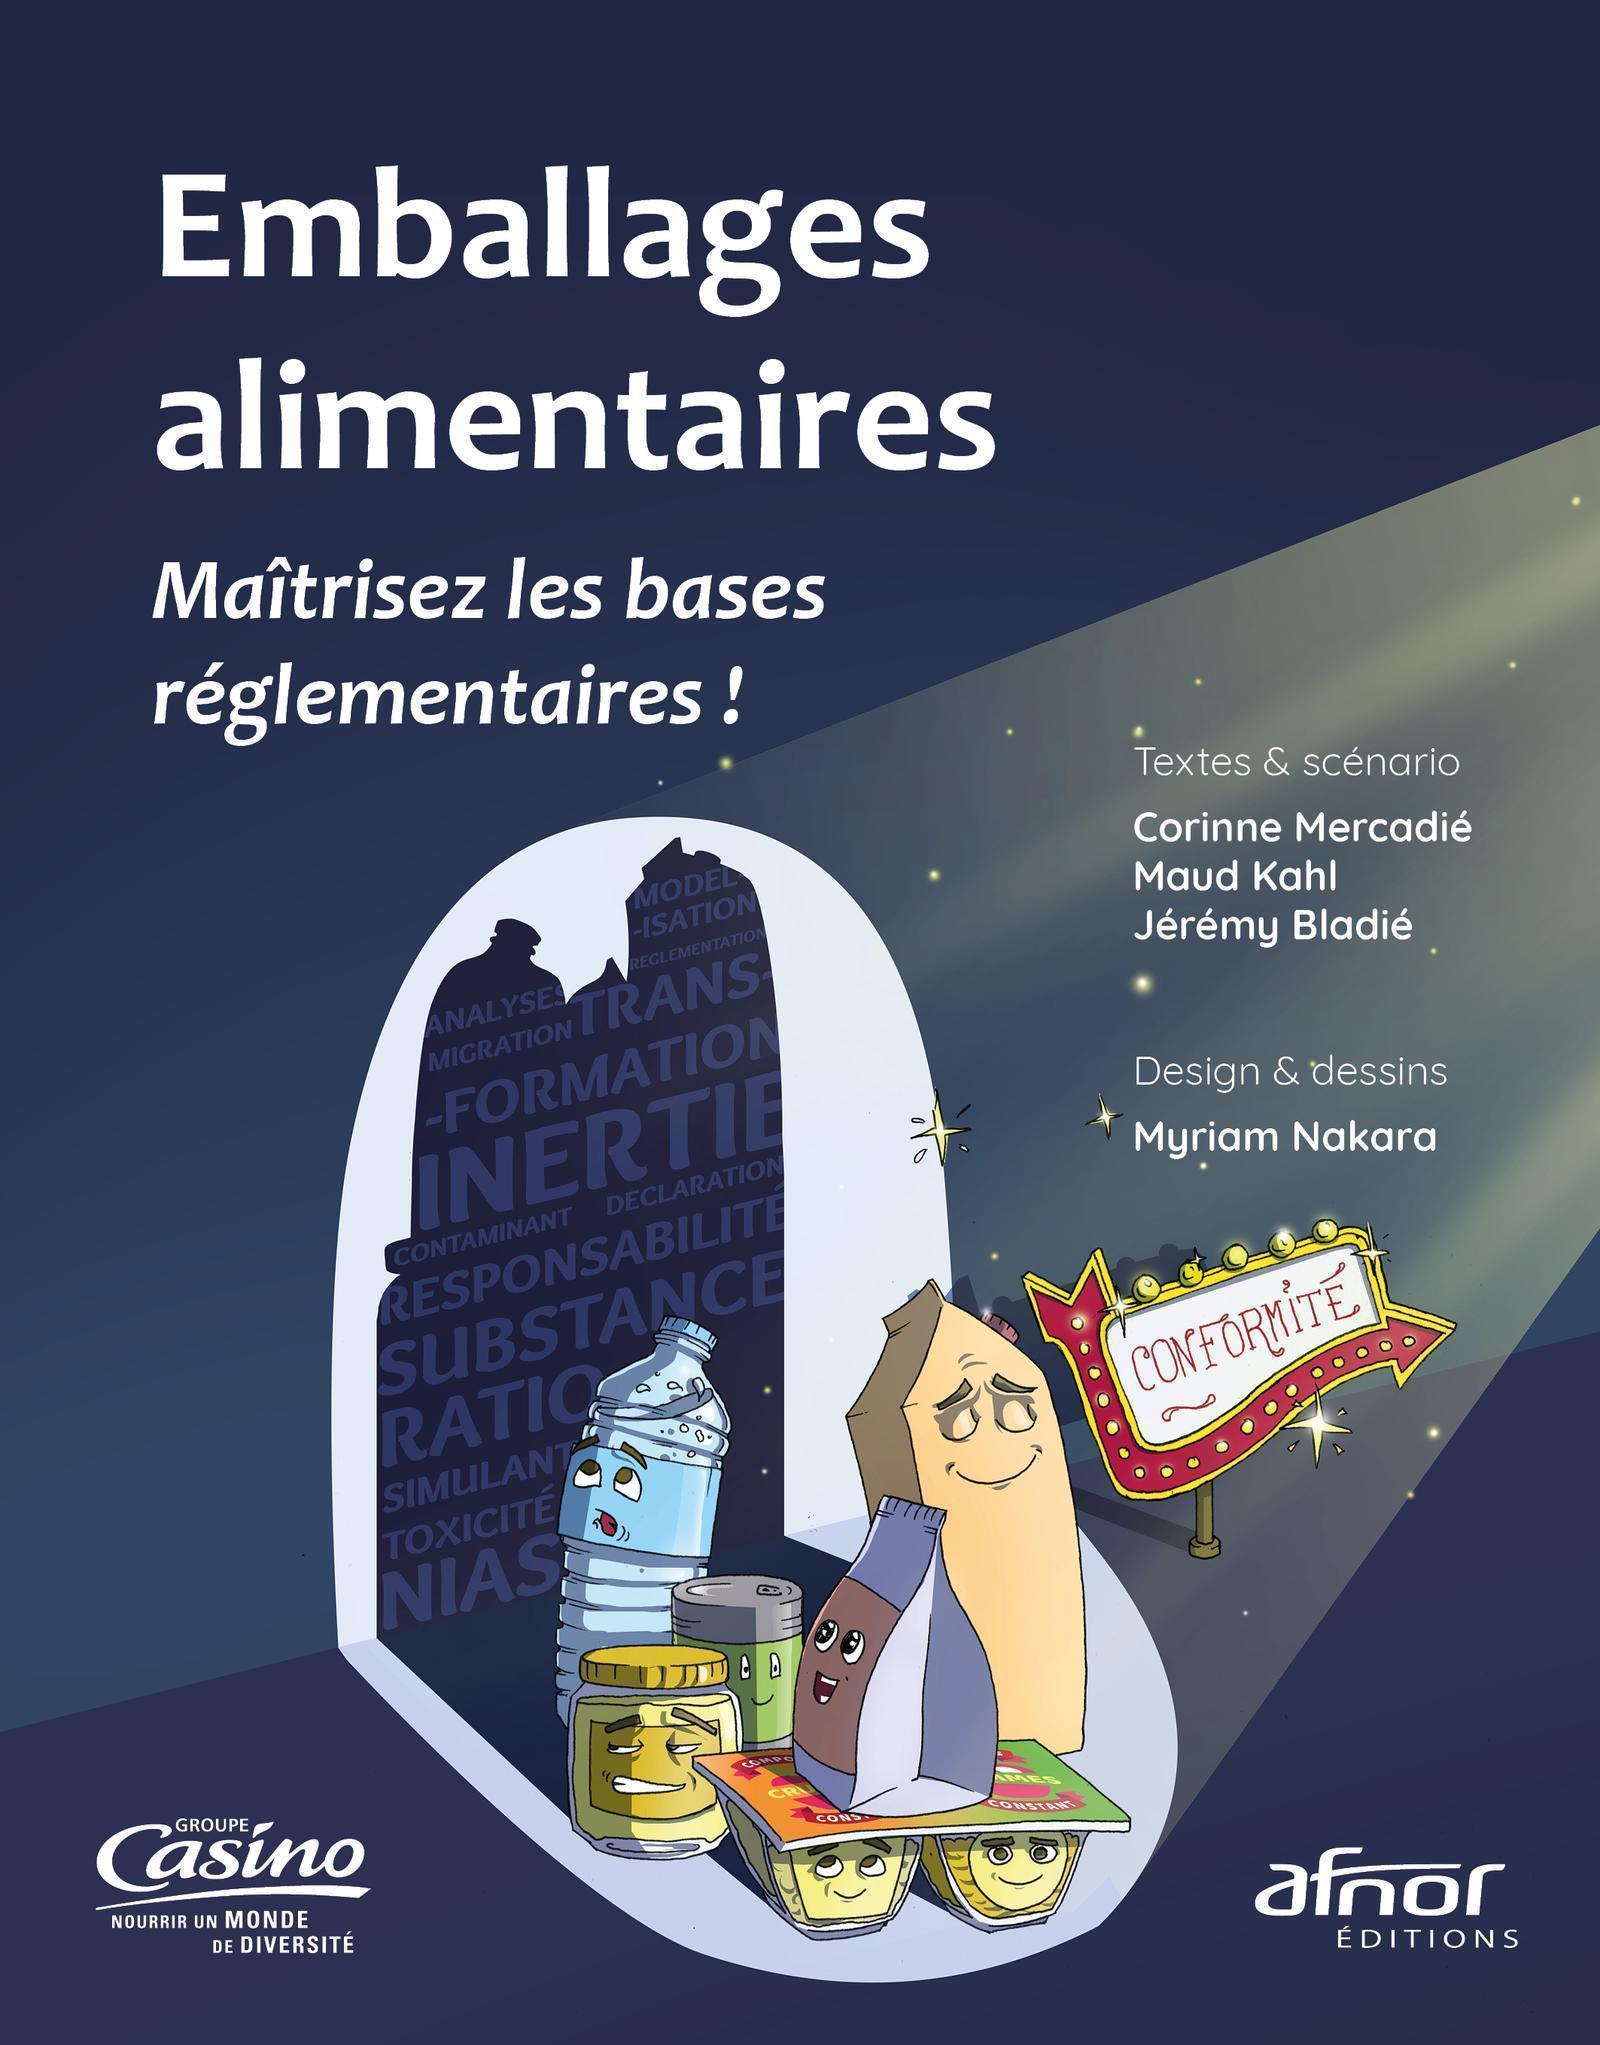 EMBALLAGES ALIMENTAIRES - MAITRISEZ LES BASES REGLEMENTAIRES !